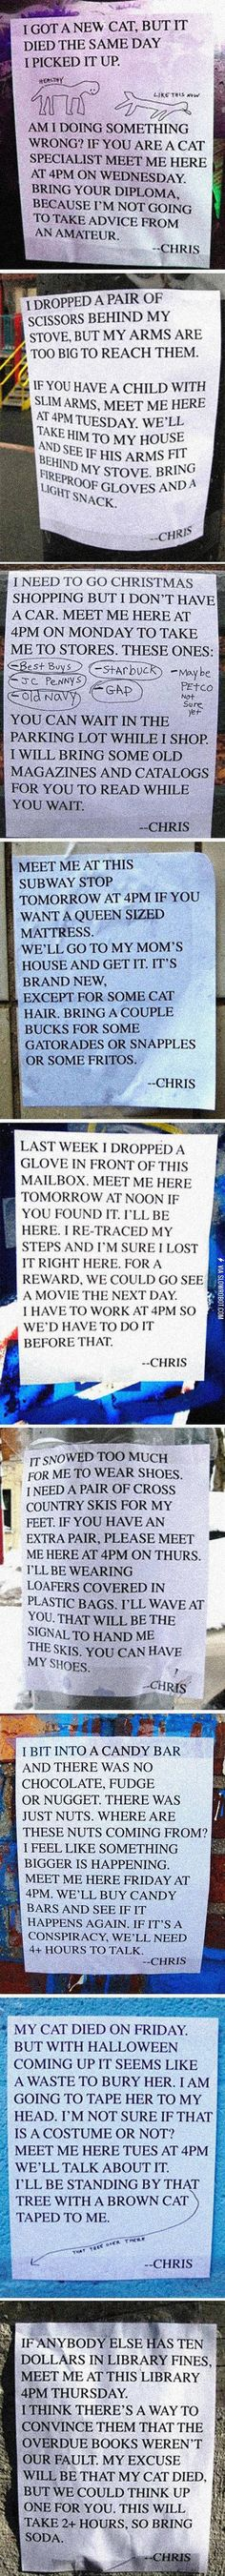 Pretty Sure I'd Like To Meet This Chris Guy